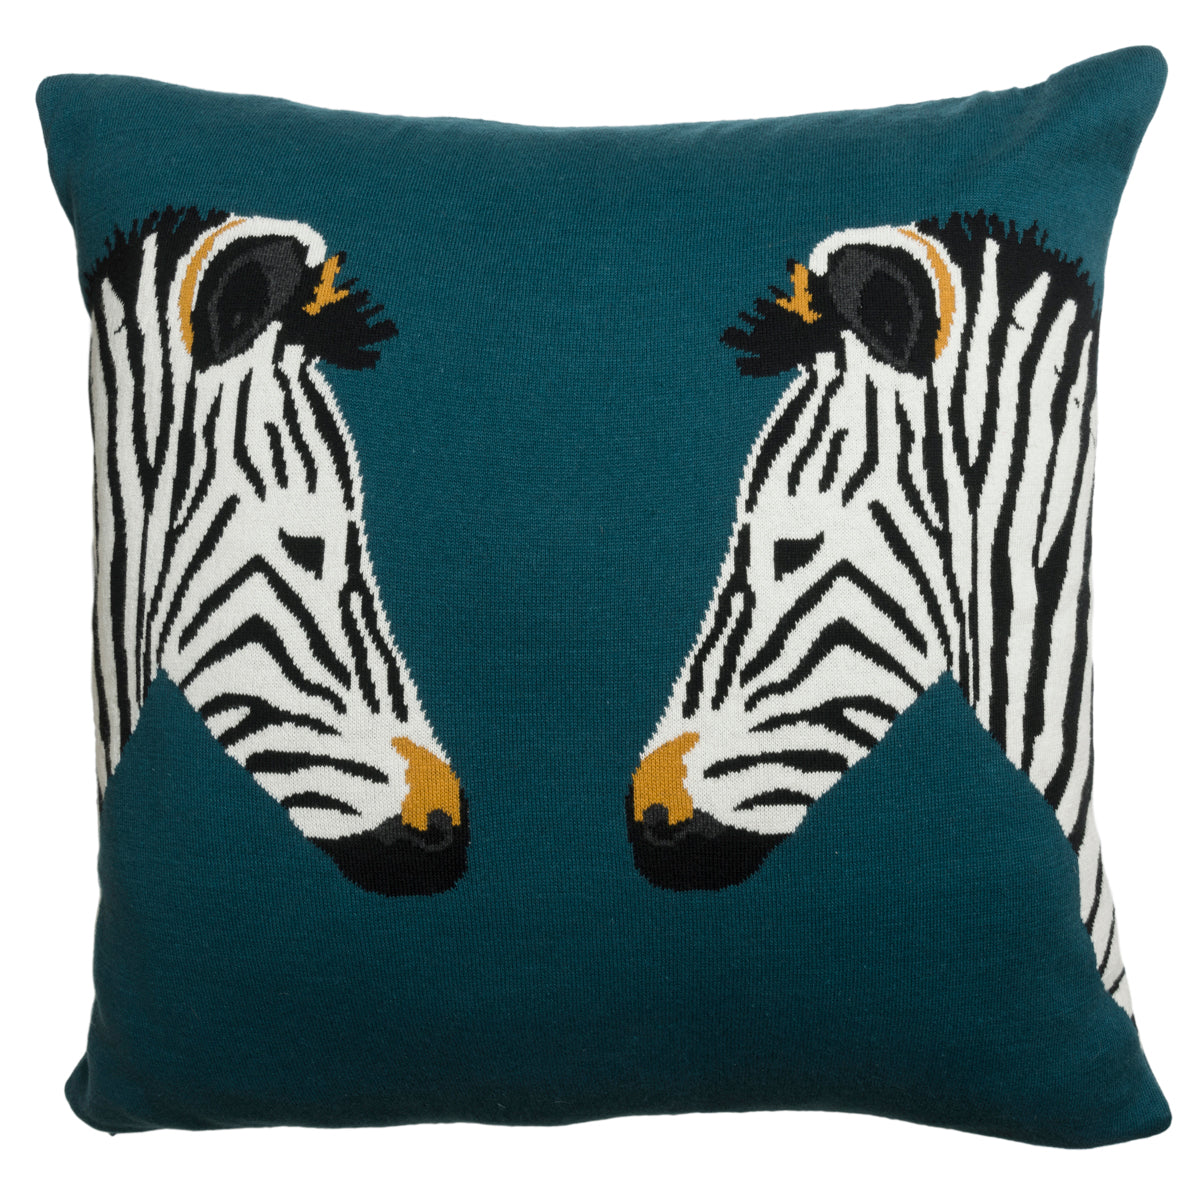 Zebra Knitted Cushion